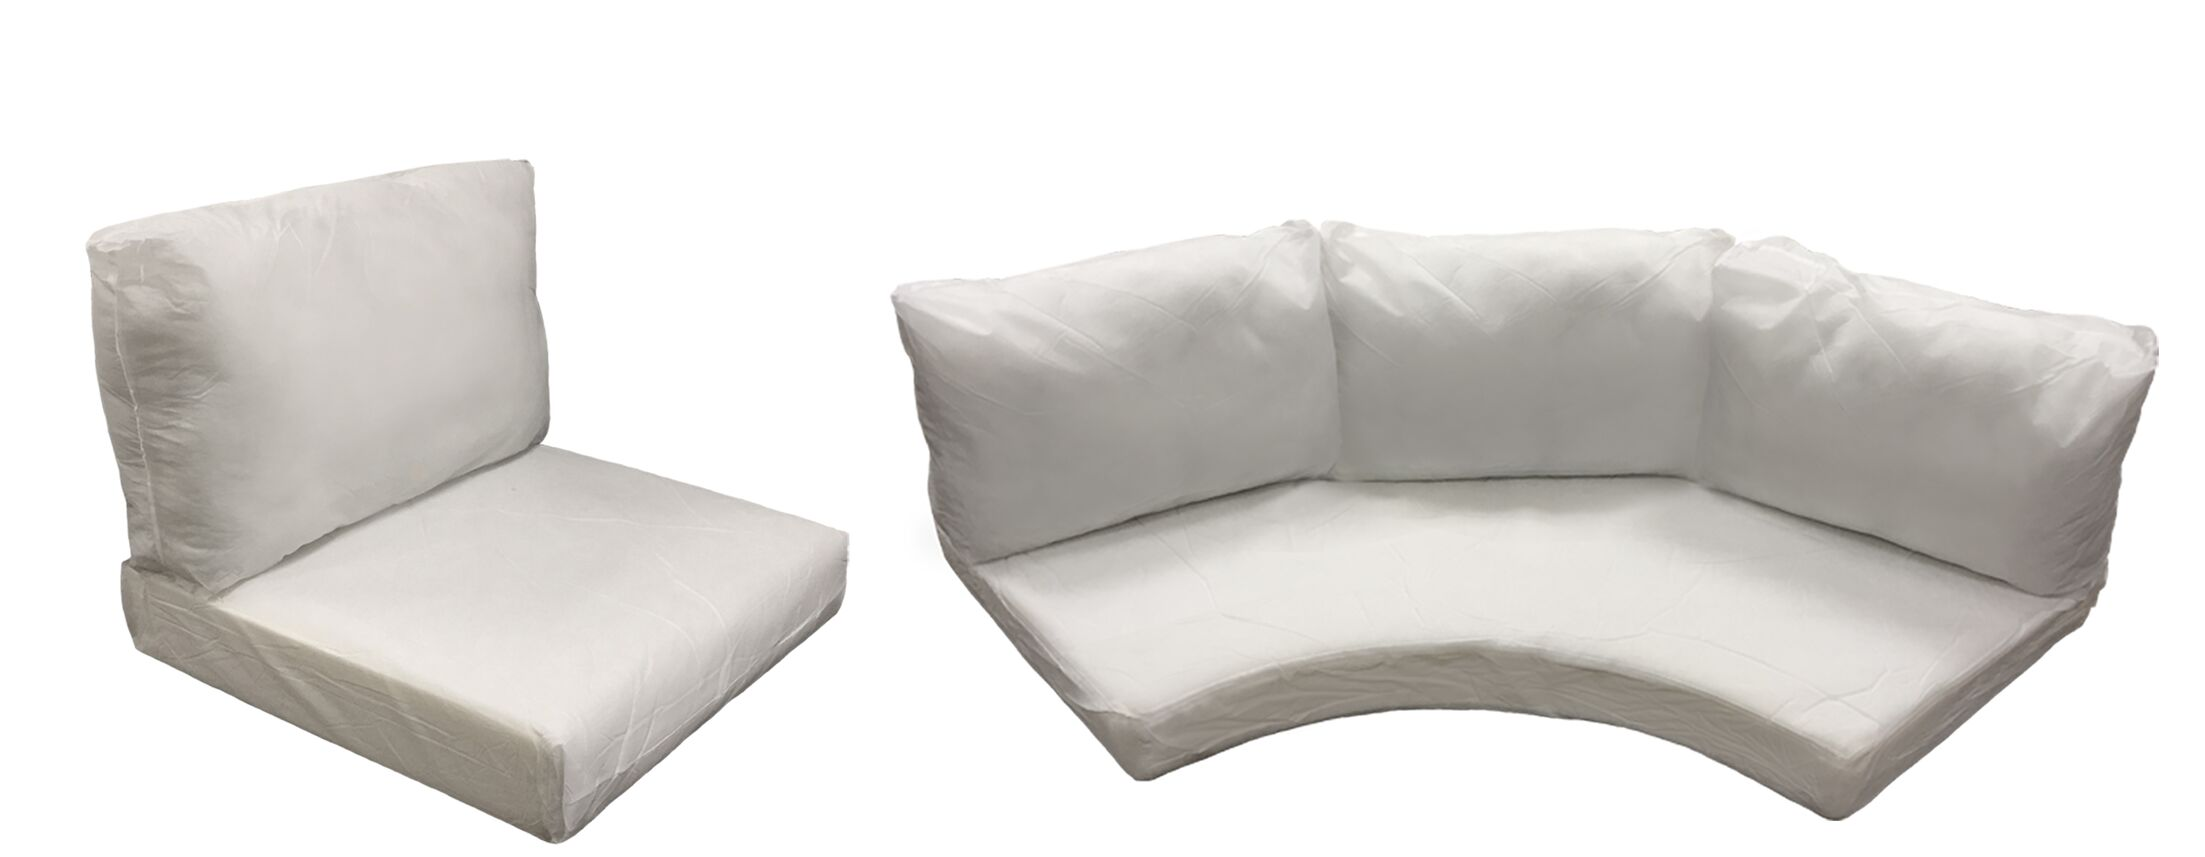 Barbados 10 Piece Outdoor Cushion Set Fabric: Coverless